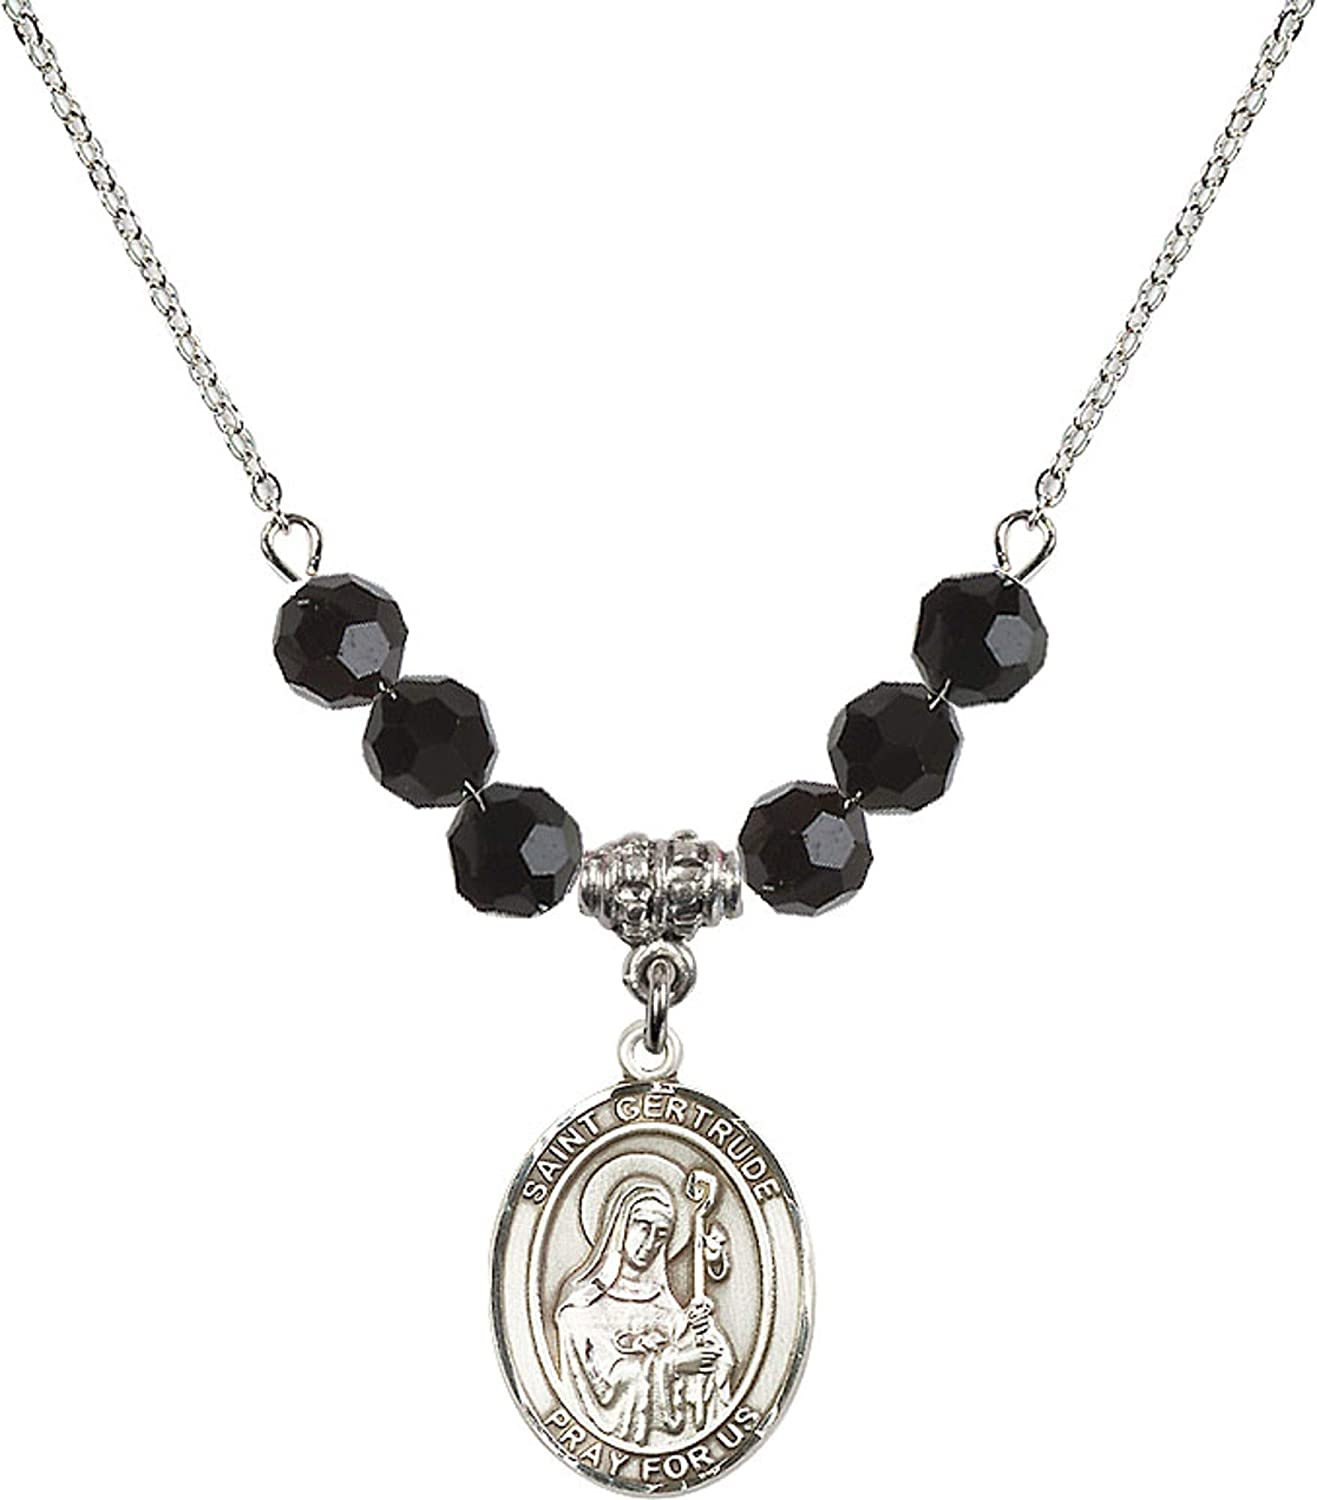 18-Inch Rhodium Plated Necklace with 6mm Jet Birthstone Beads and Sterling Silver Saint Gertrude of Nivelles Charm.